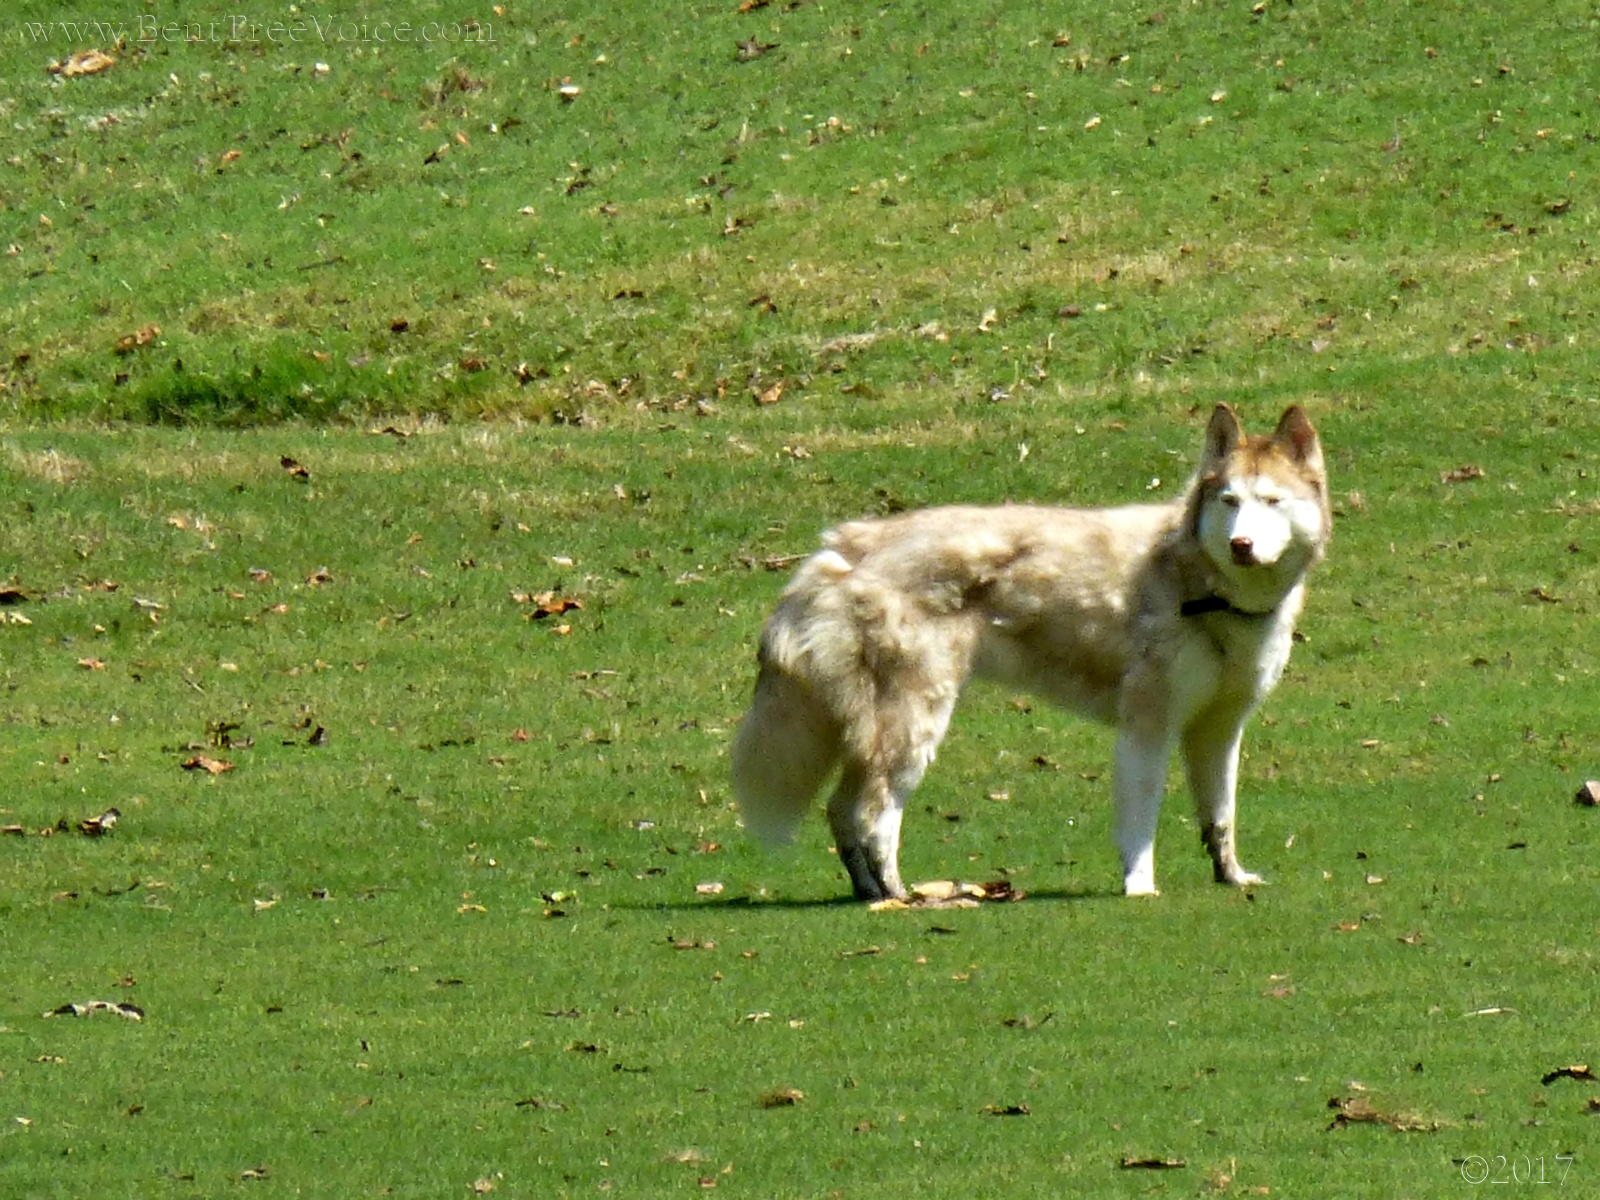 September 17, 2017 - Not a wolf on Hole 12